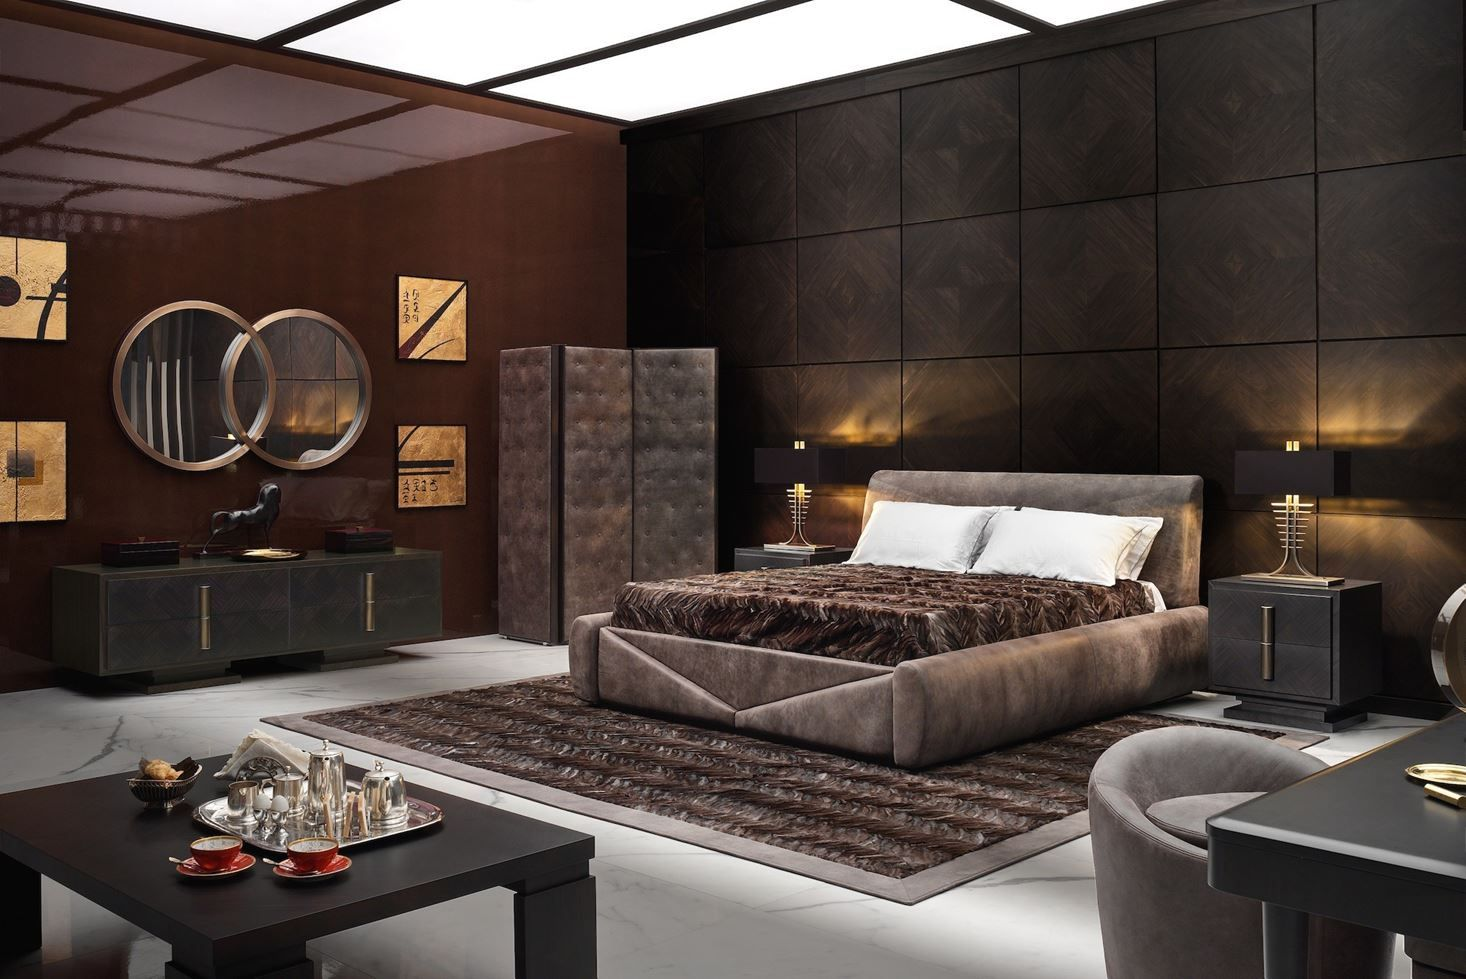 Smania Picture Gallery Minotti Furniture Bed Design Bedroom Interior